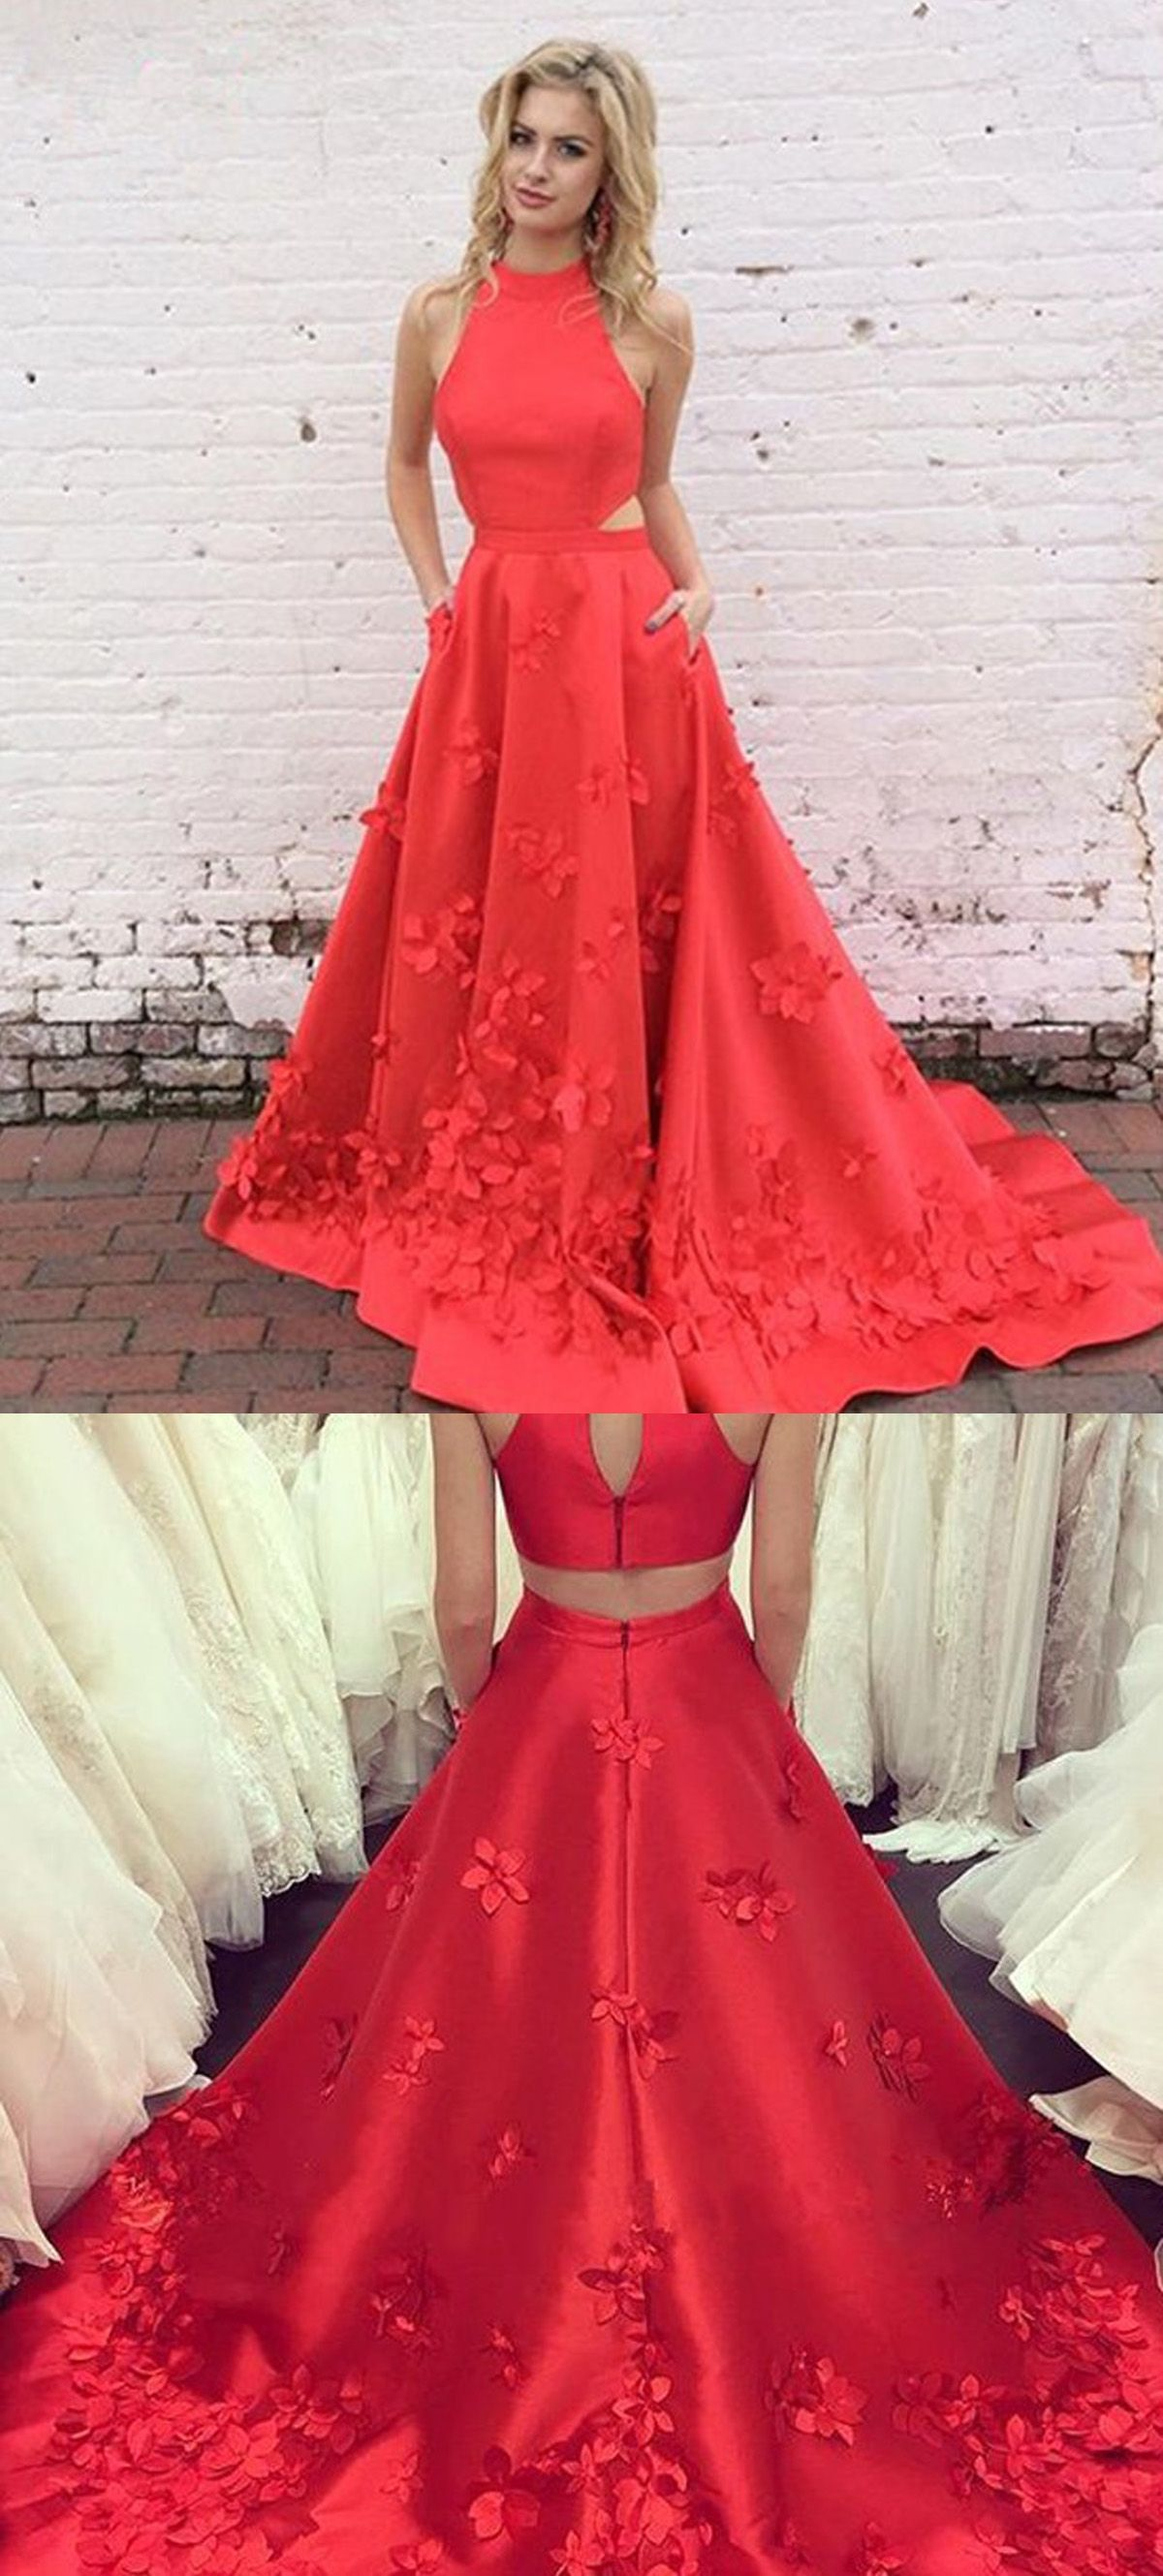 Aline high neck keyhole back long red satin prom dress with appliques